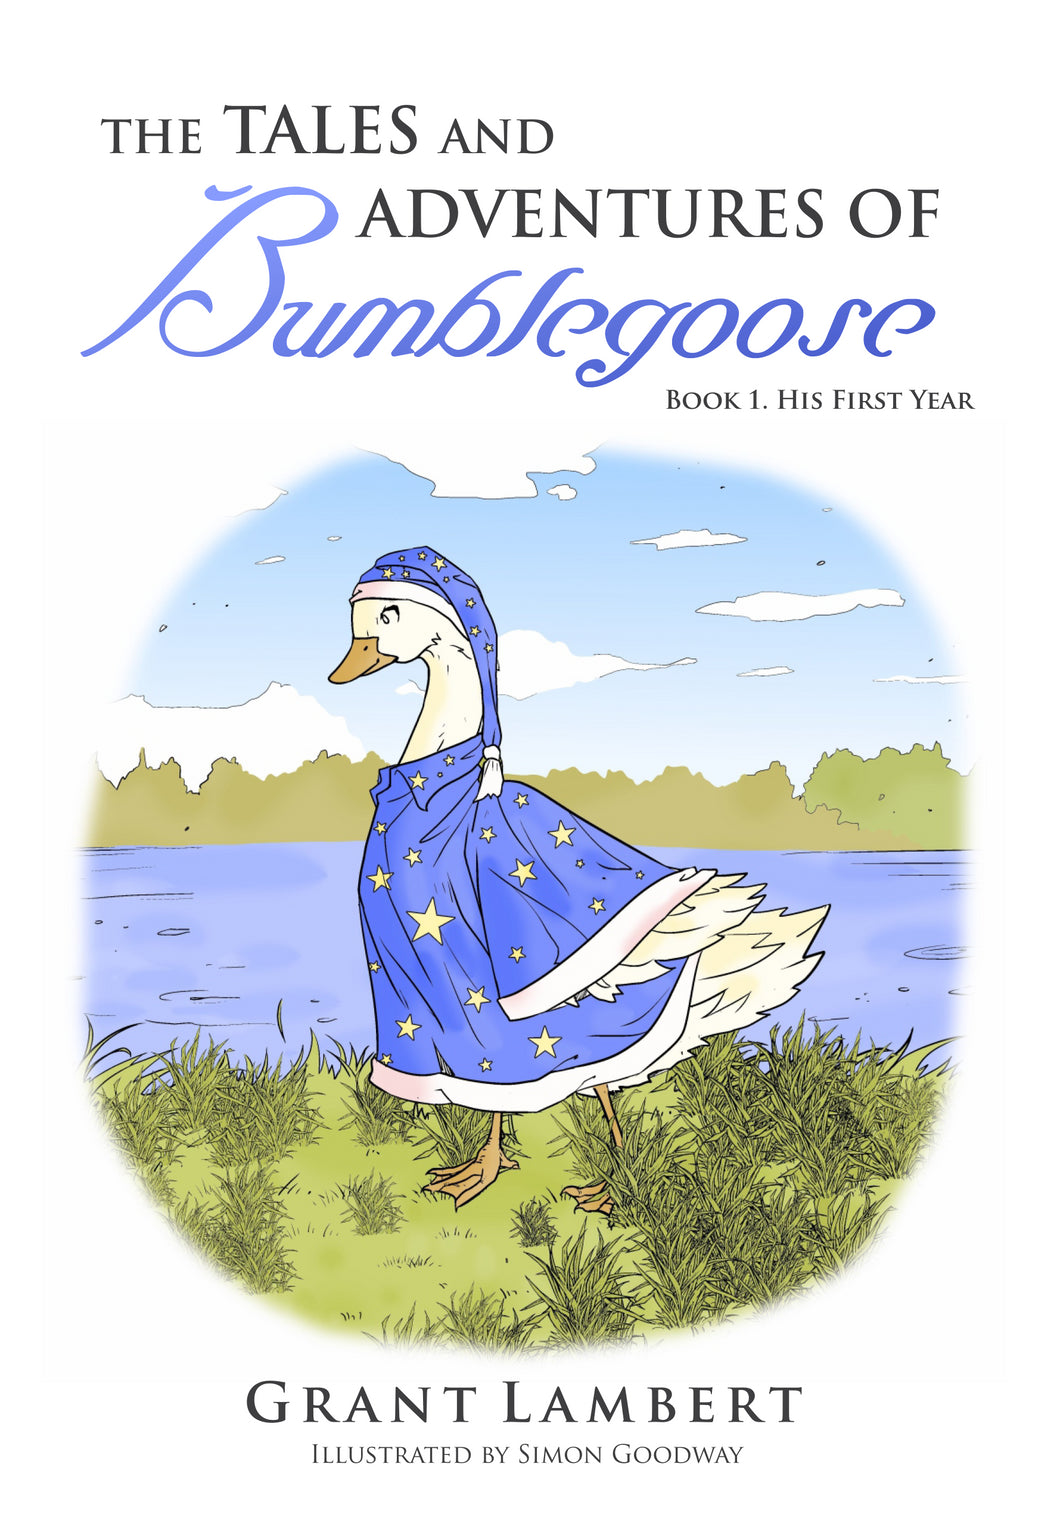 The Tales and Adventures of Bumblegoose - Book 1: His First Year